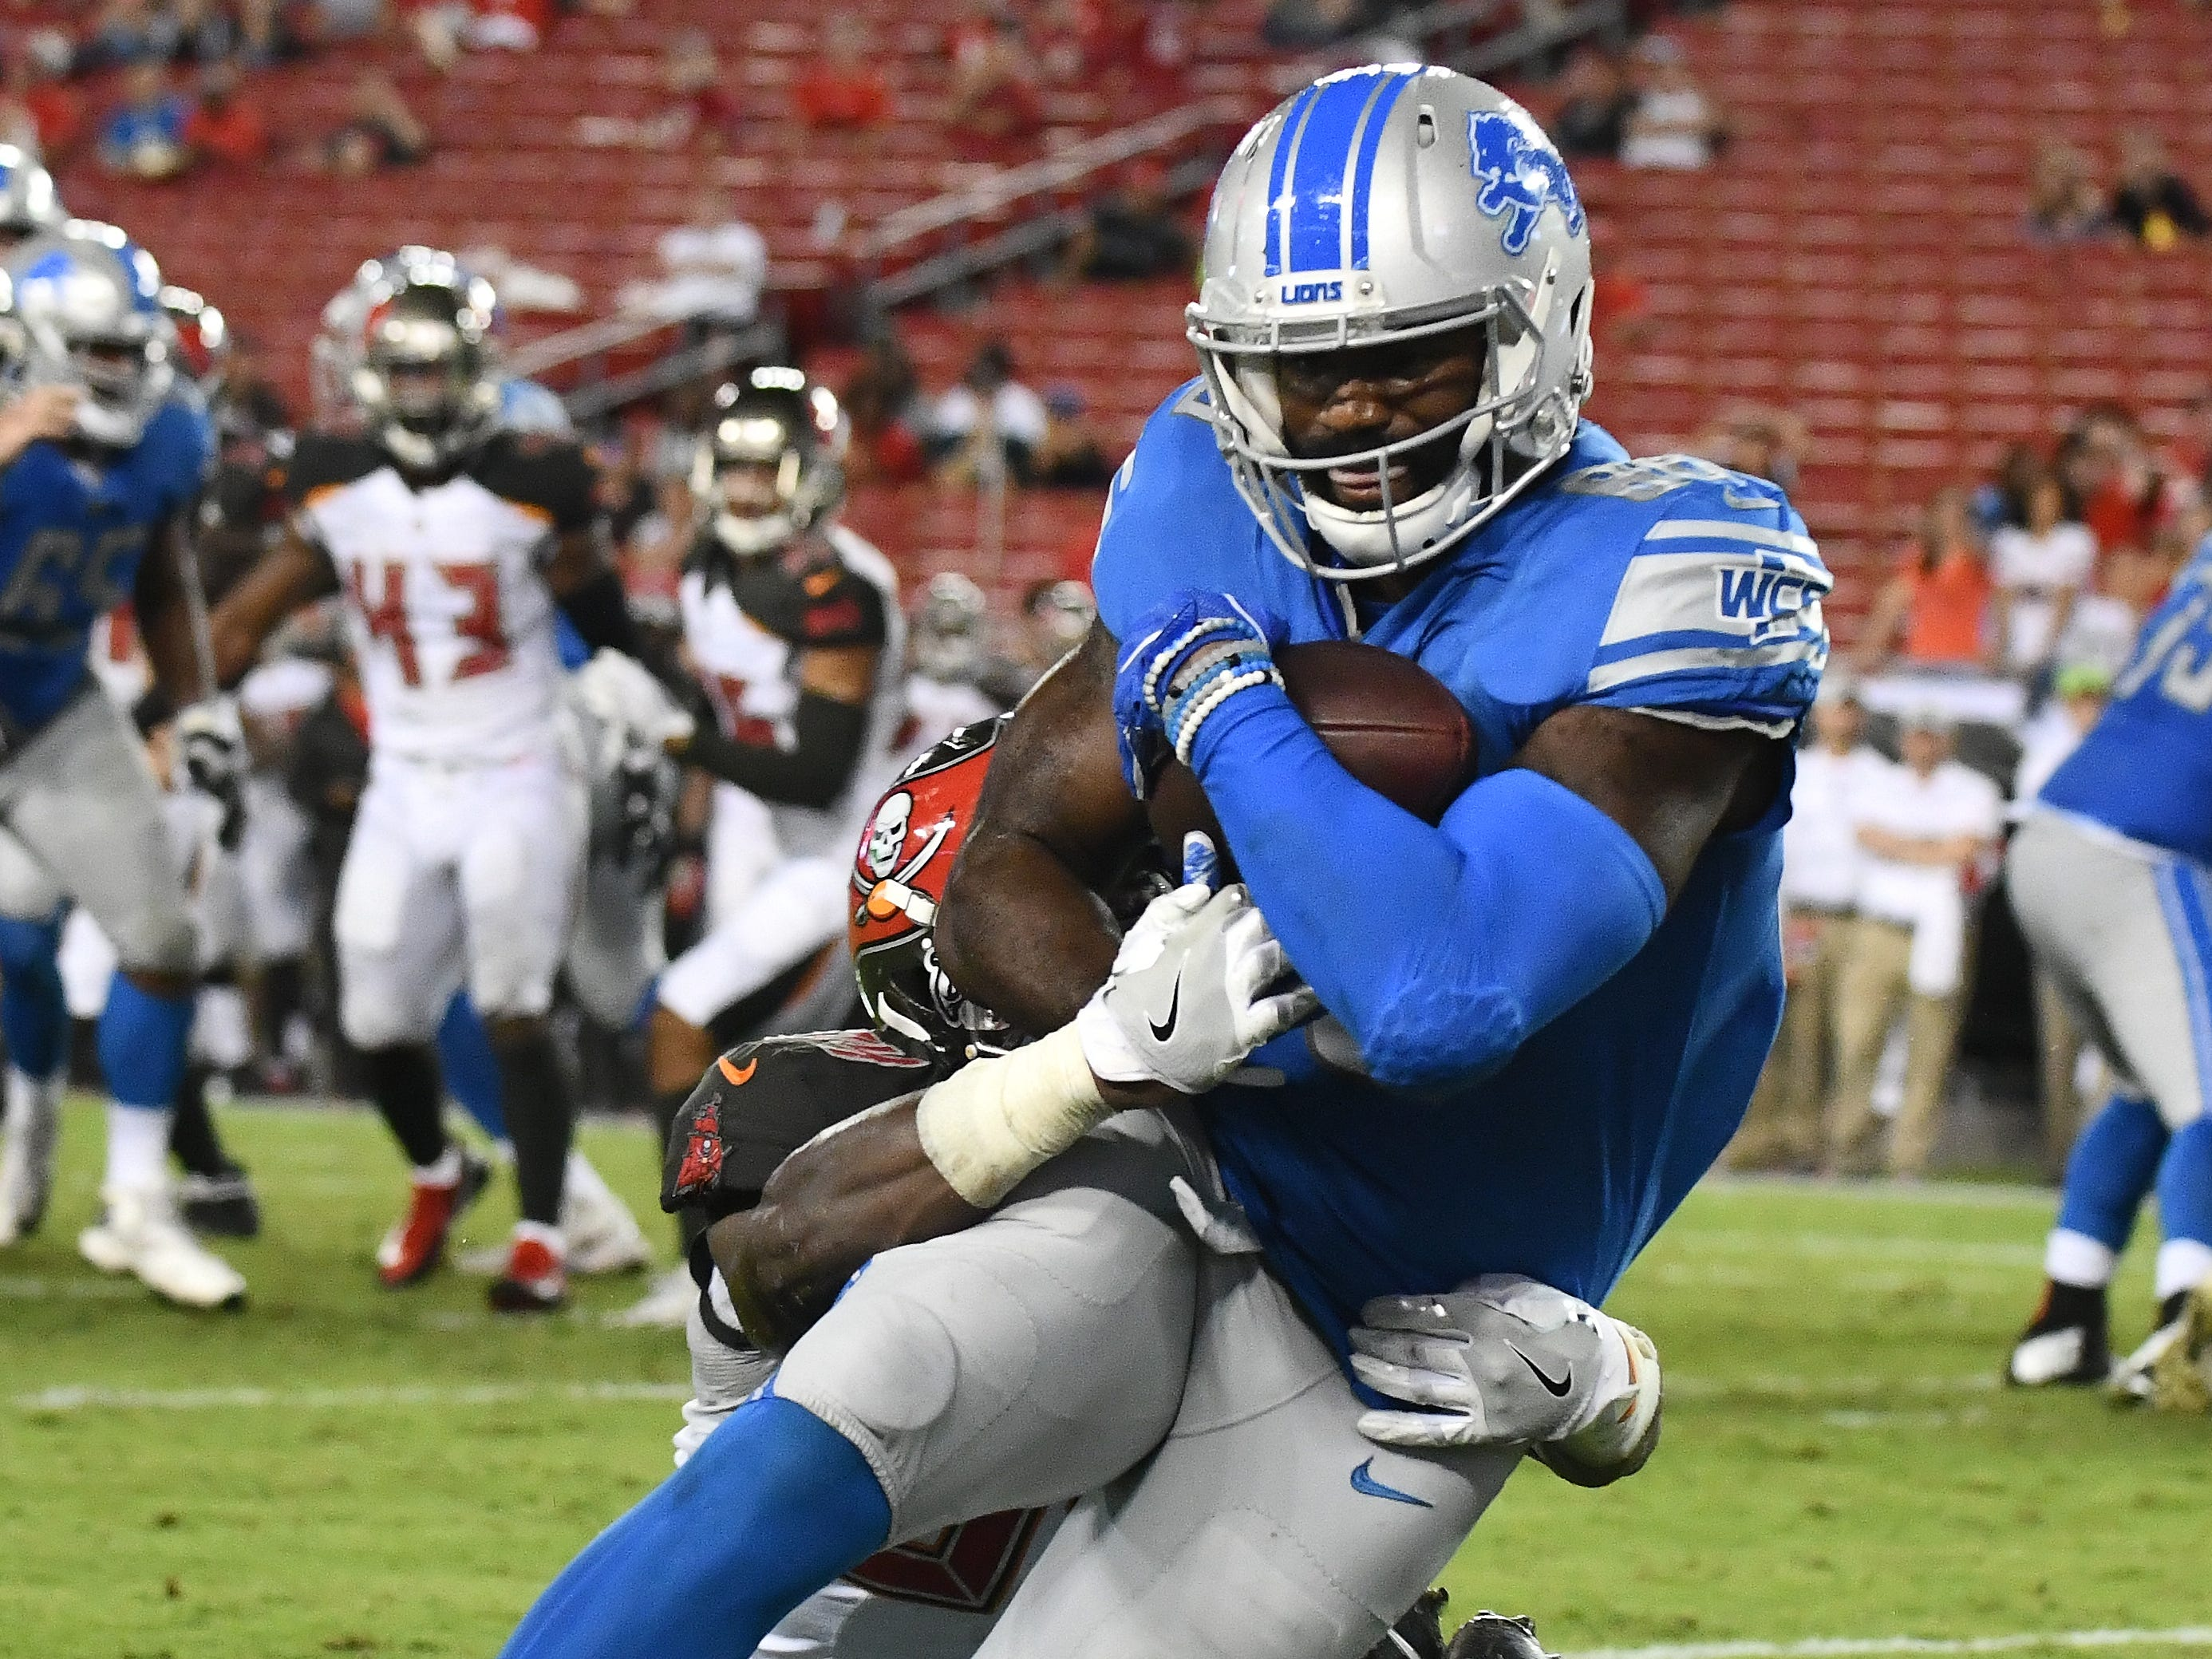 Lions' Marcus Lucas runs into the end zone for the go-ahead touchdown, with defense by Buccaneers' Godwin Igwebuike, as the Lions beat the Tampa Bay Buccaneers 33-30 at Raymond James Stadium in Tampa, Florida on August 24, 2018.